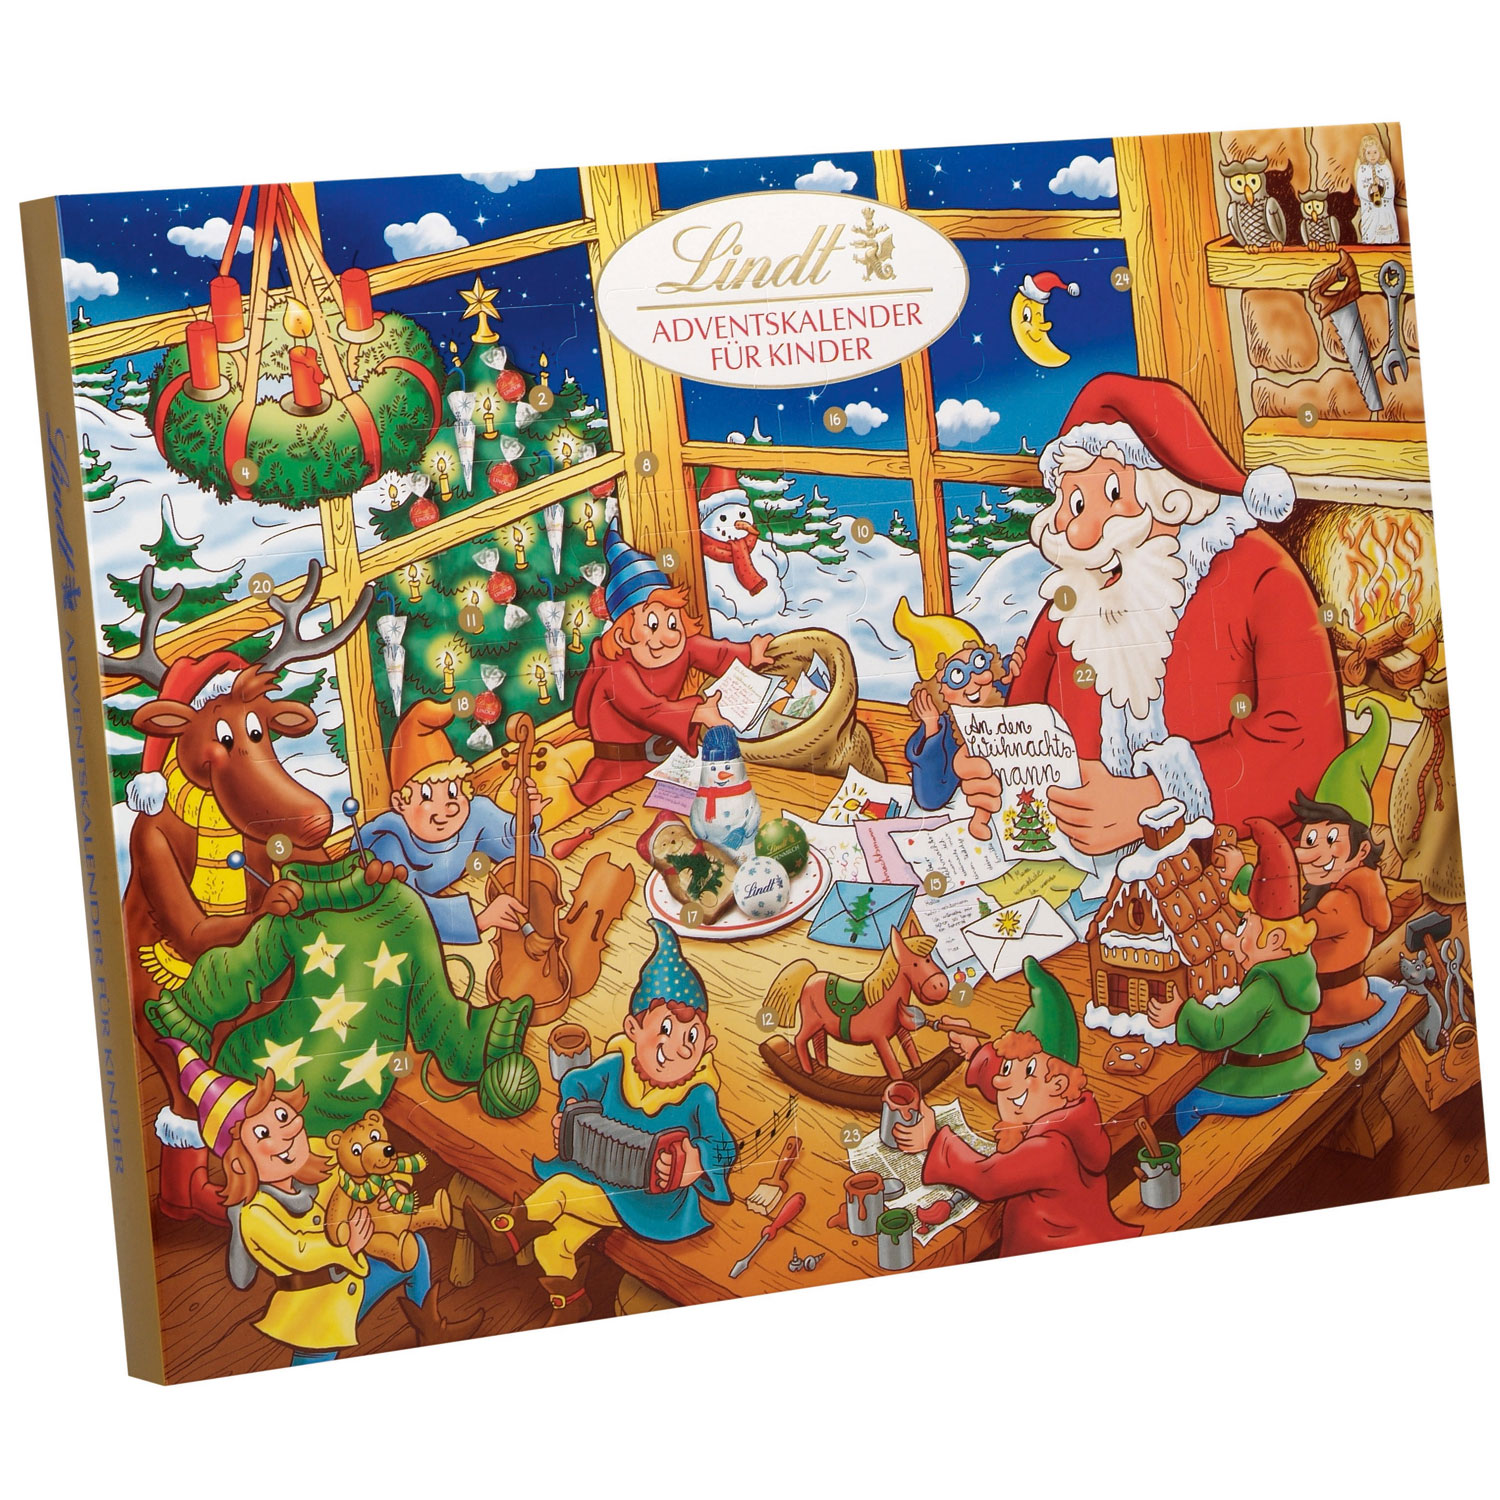 lindt kinder adventskalender online kaufen im world of sweets shop. Black Bedroom Furniture Sets. Home Design Ideas